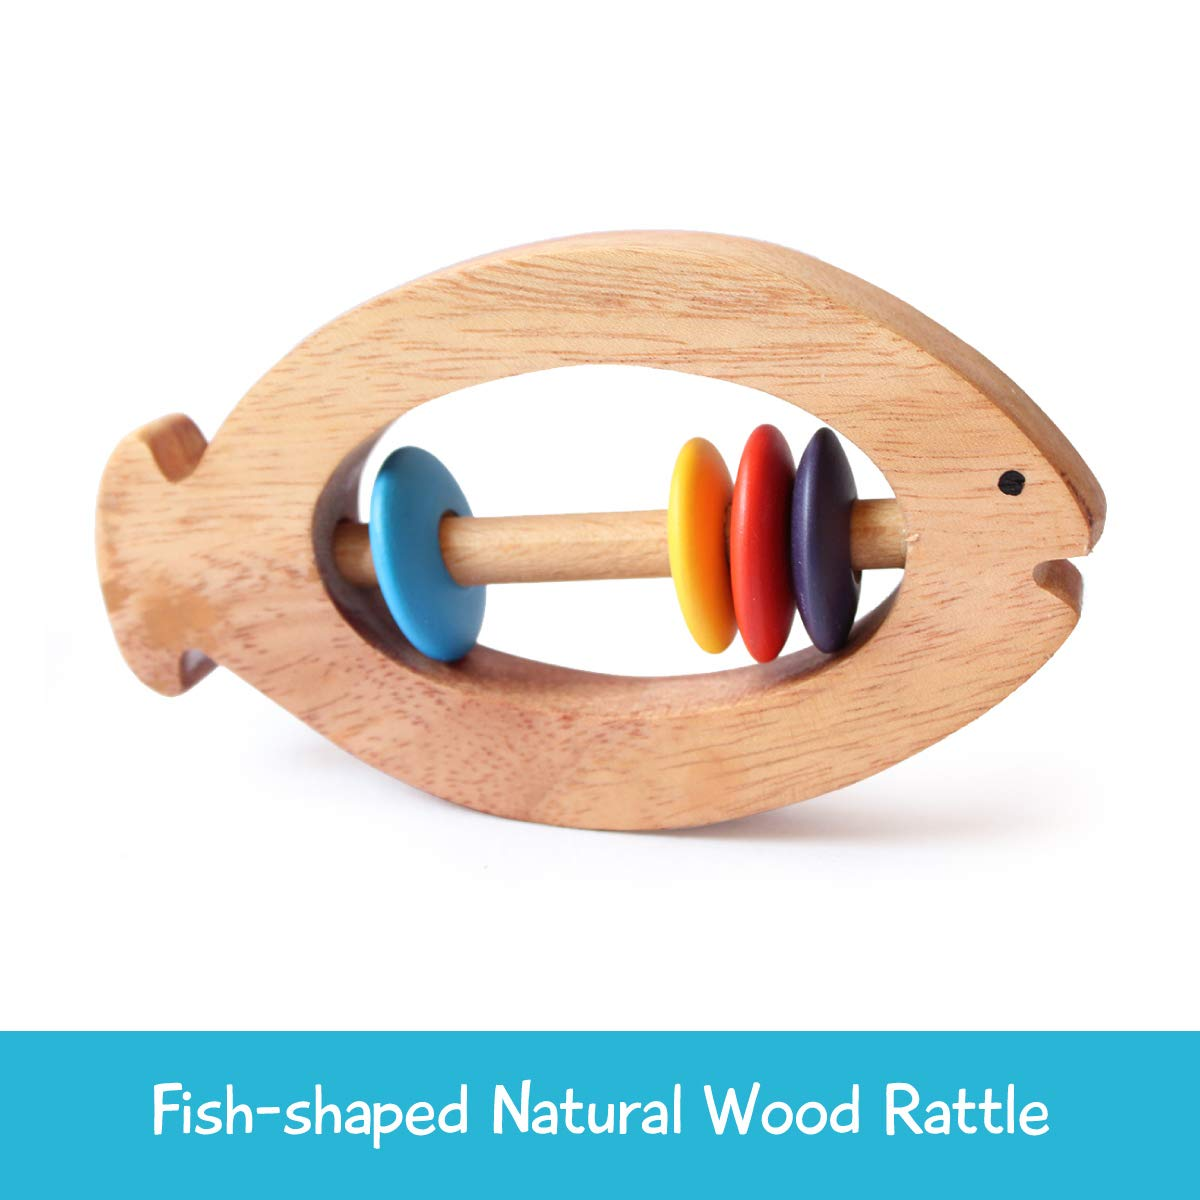 shumee Wooden Fish Rattle Rings and Teethers for Infants | Sensory Toy | 100% Safe, Natural & Eco-Friendly | 6 Months+